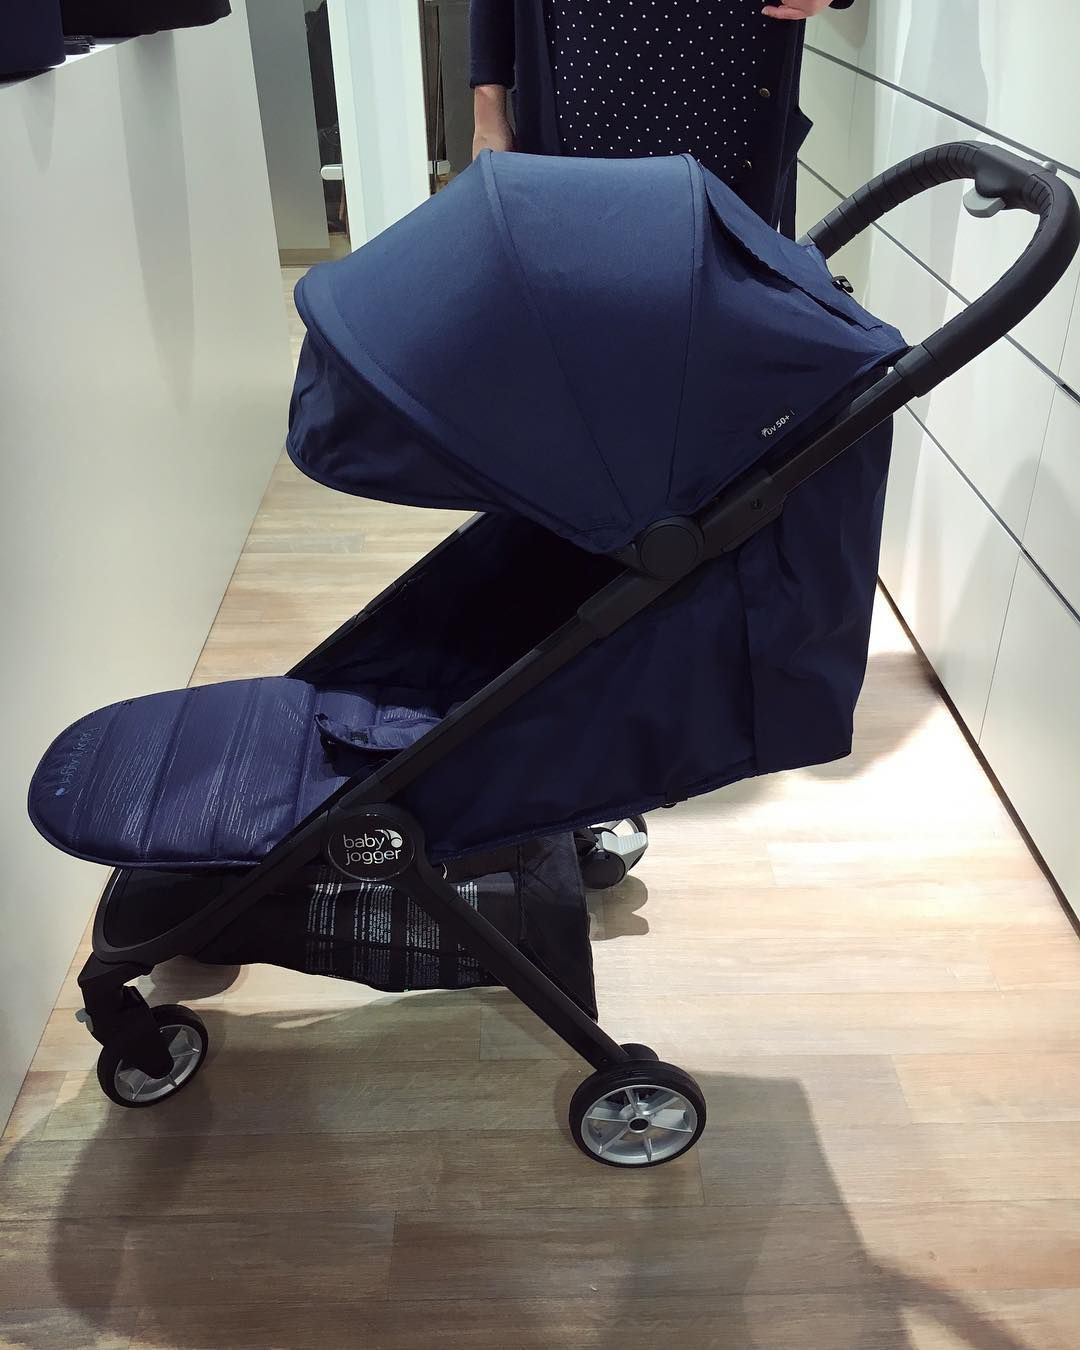 Will The New Baby Jogger City Tour 2 Have Deeper Seat Will It Be